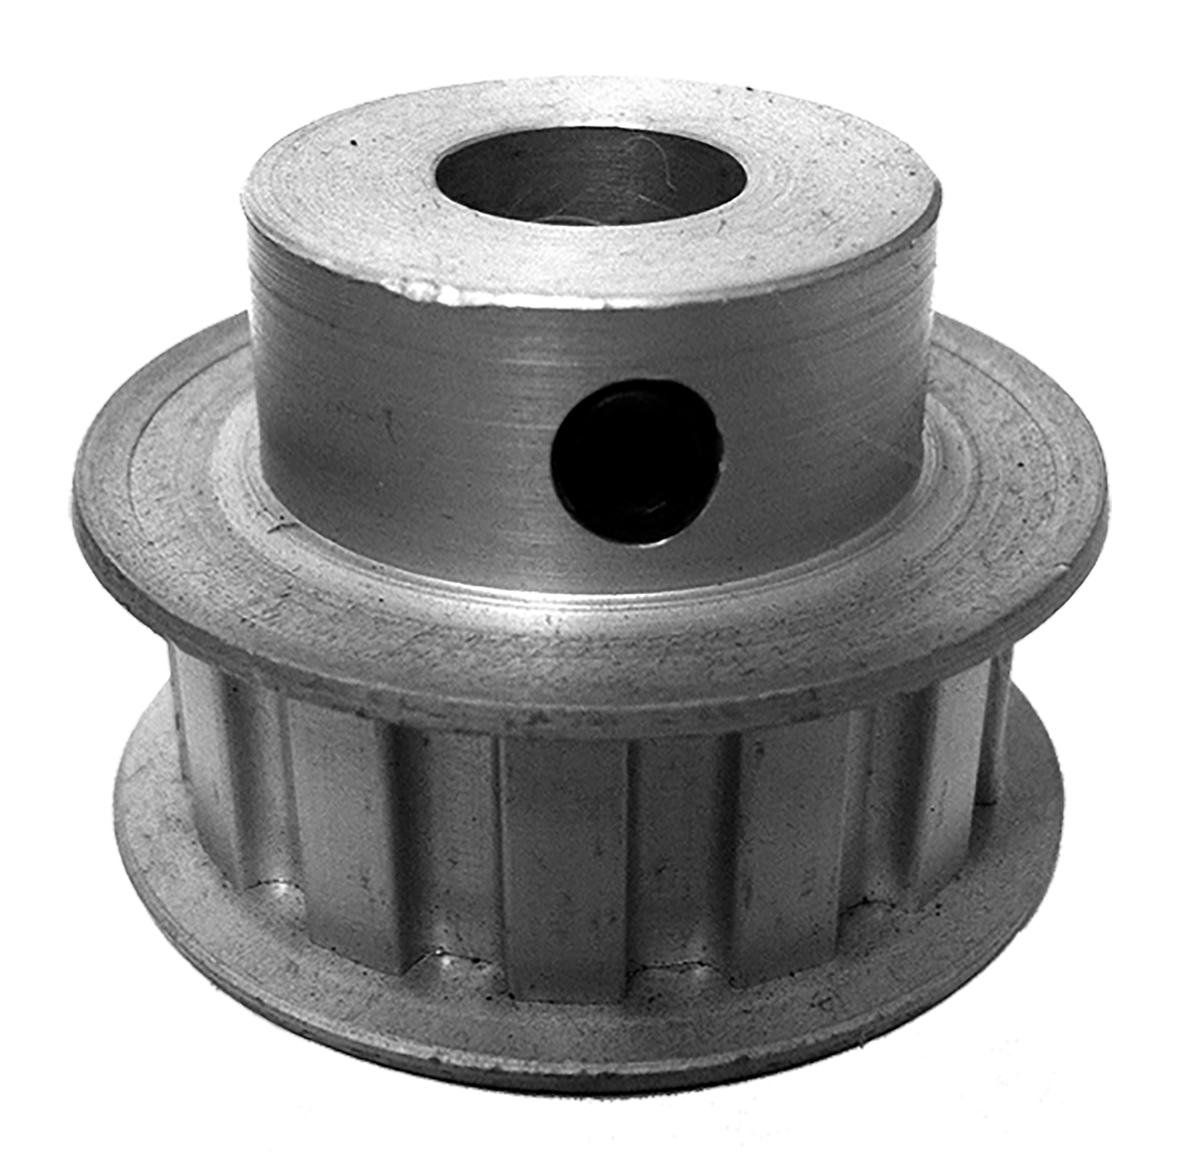 10L075-6FA5 - Aluminum Imperial Pitch Pulleys